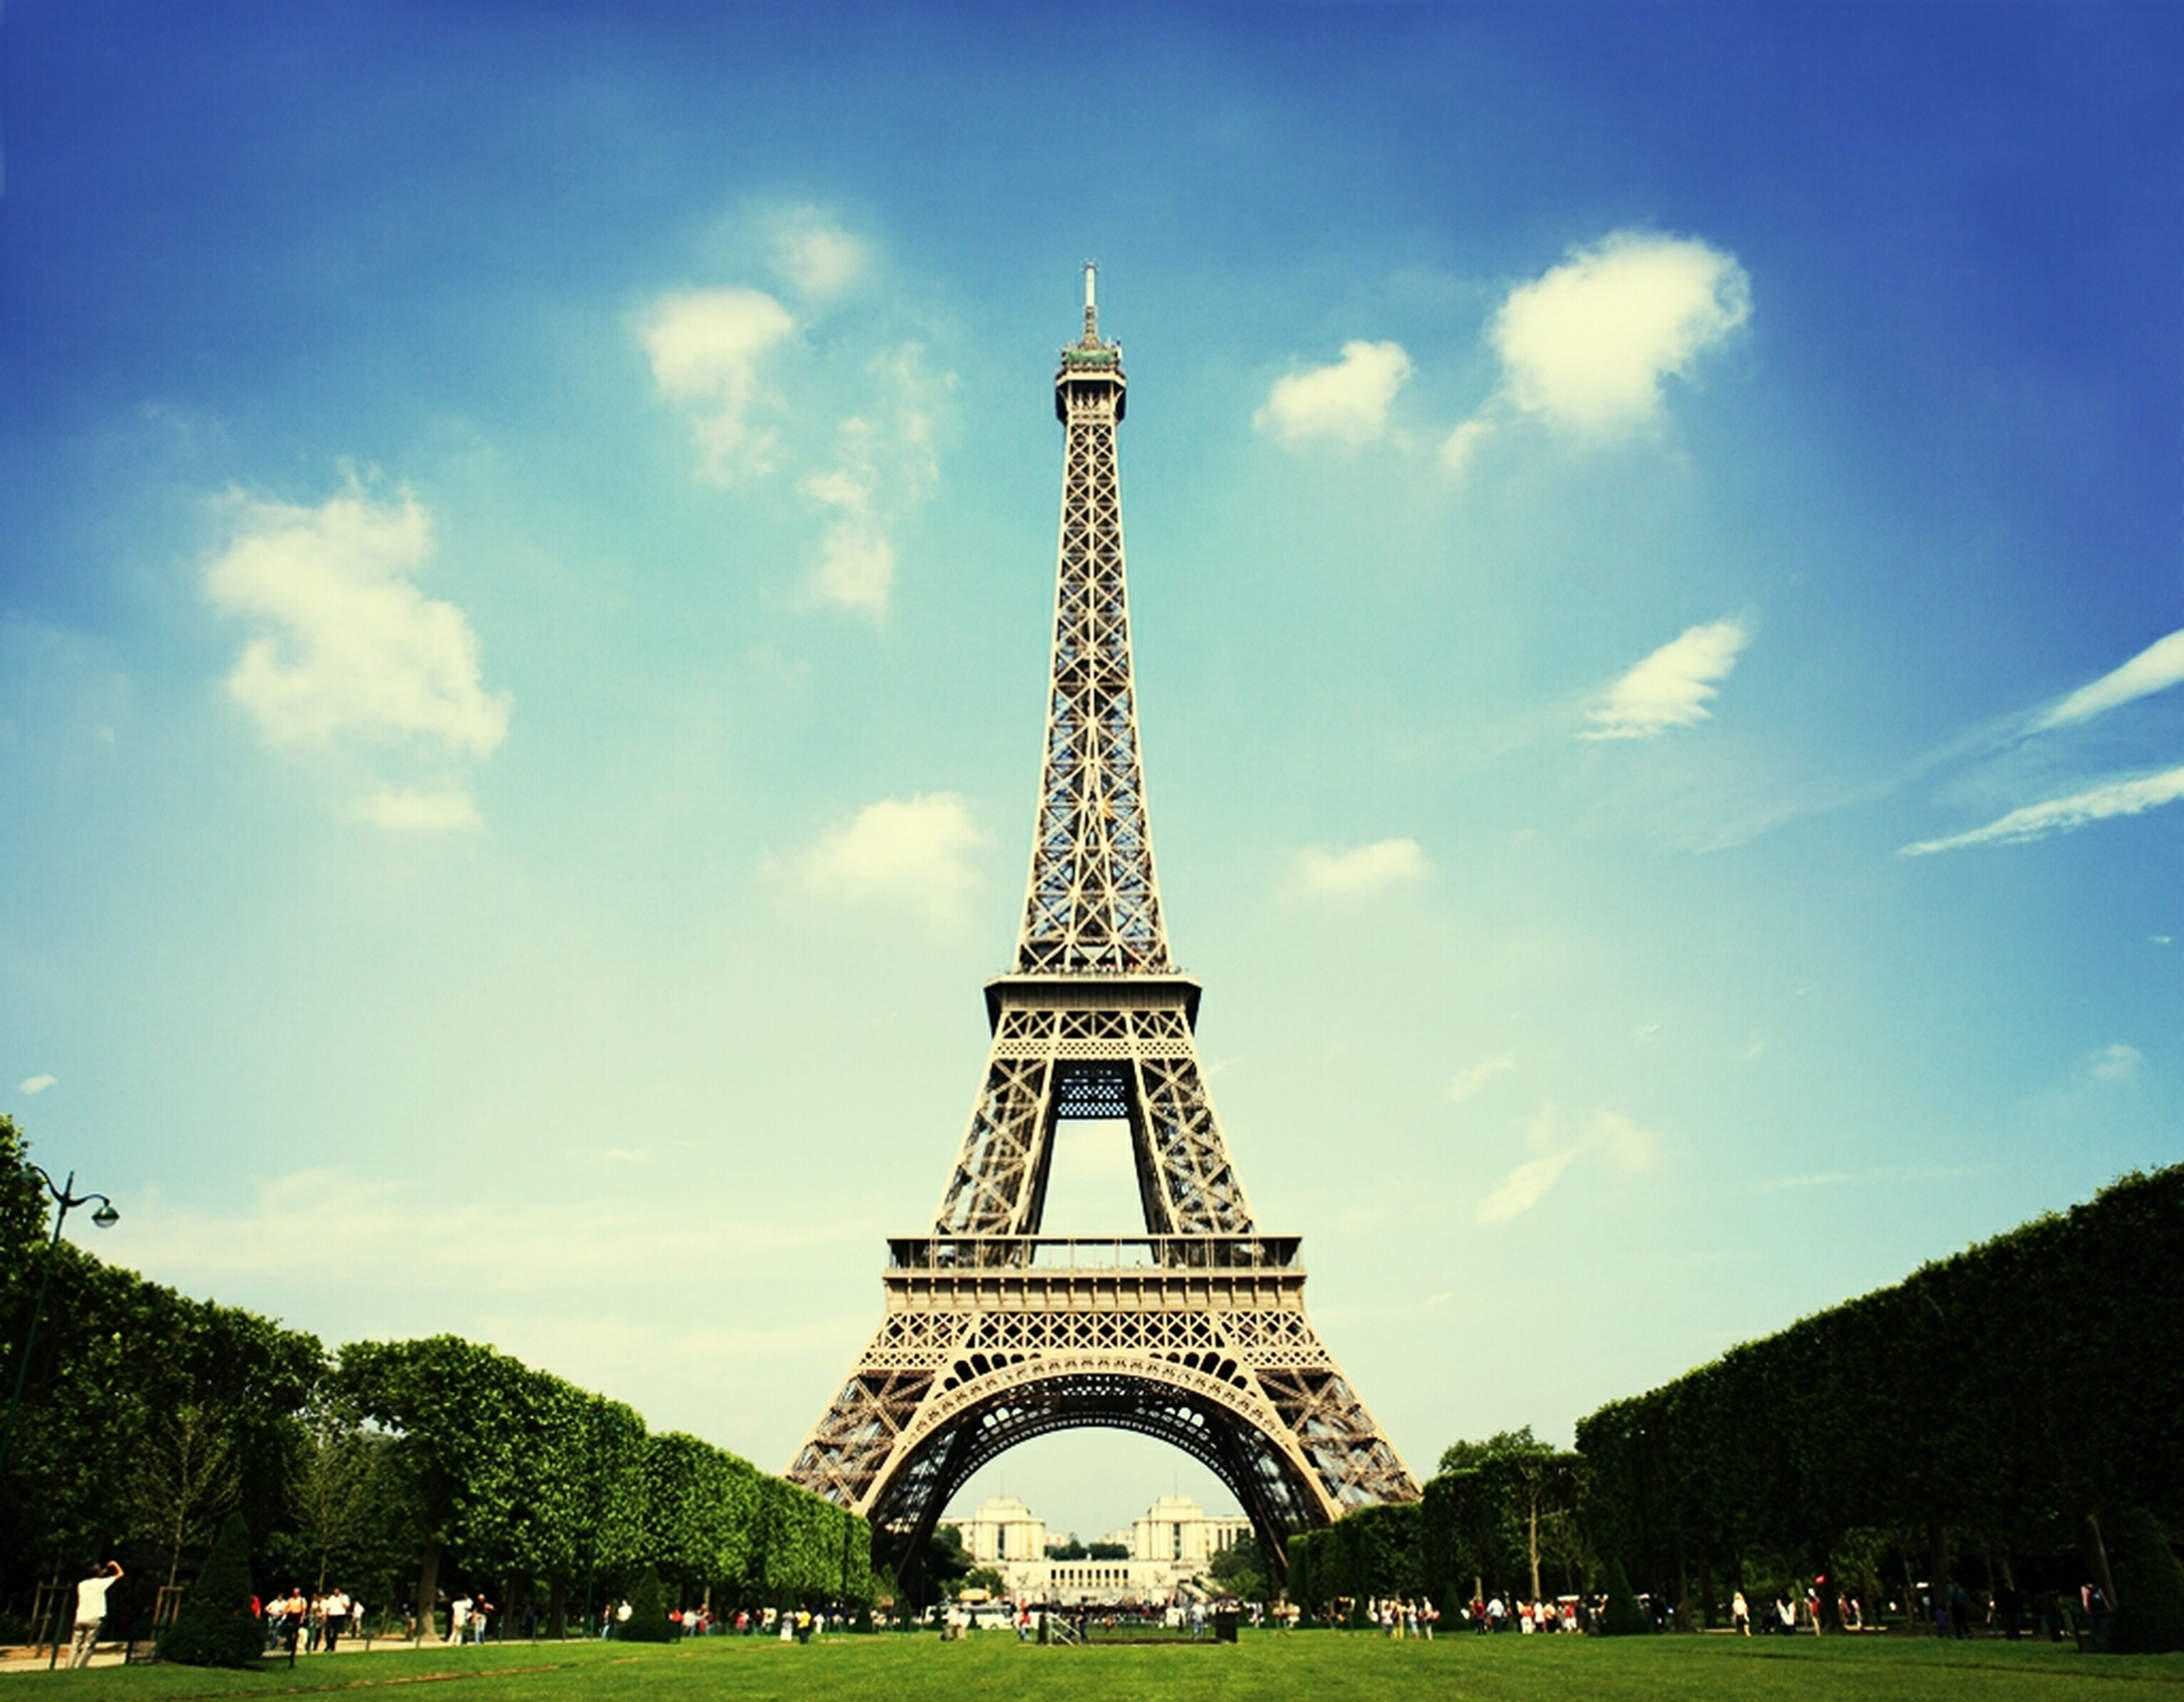 architecture, famous place, sky, built structure, eiffel tower, international landmark, travel destinations, tourism, tower, capital cities, travel, history, culture, tree, large group of people, cloud - sky, grass, tall - high, metal